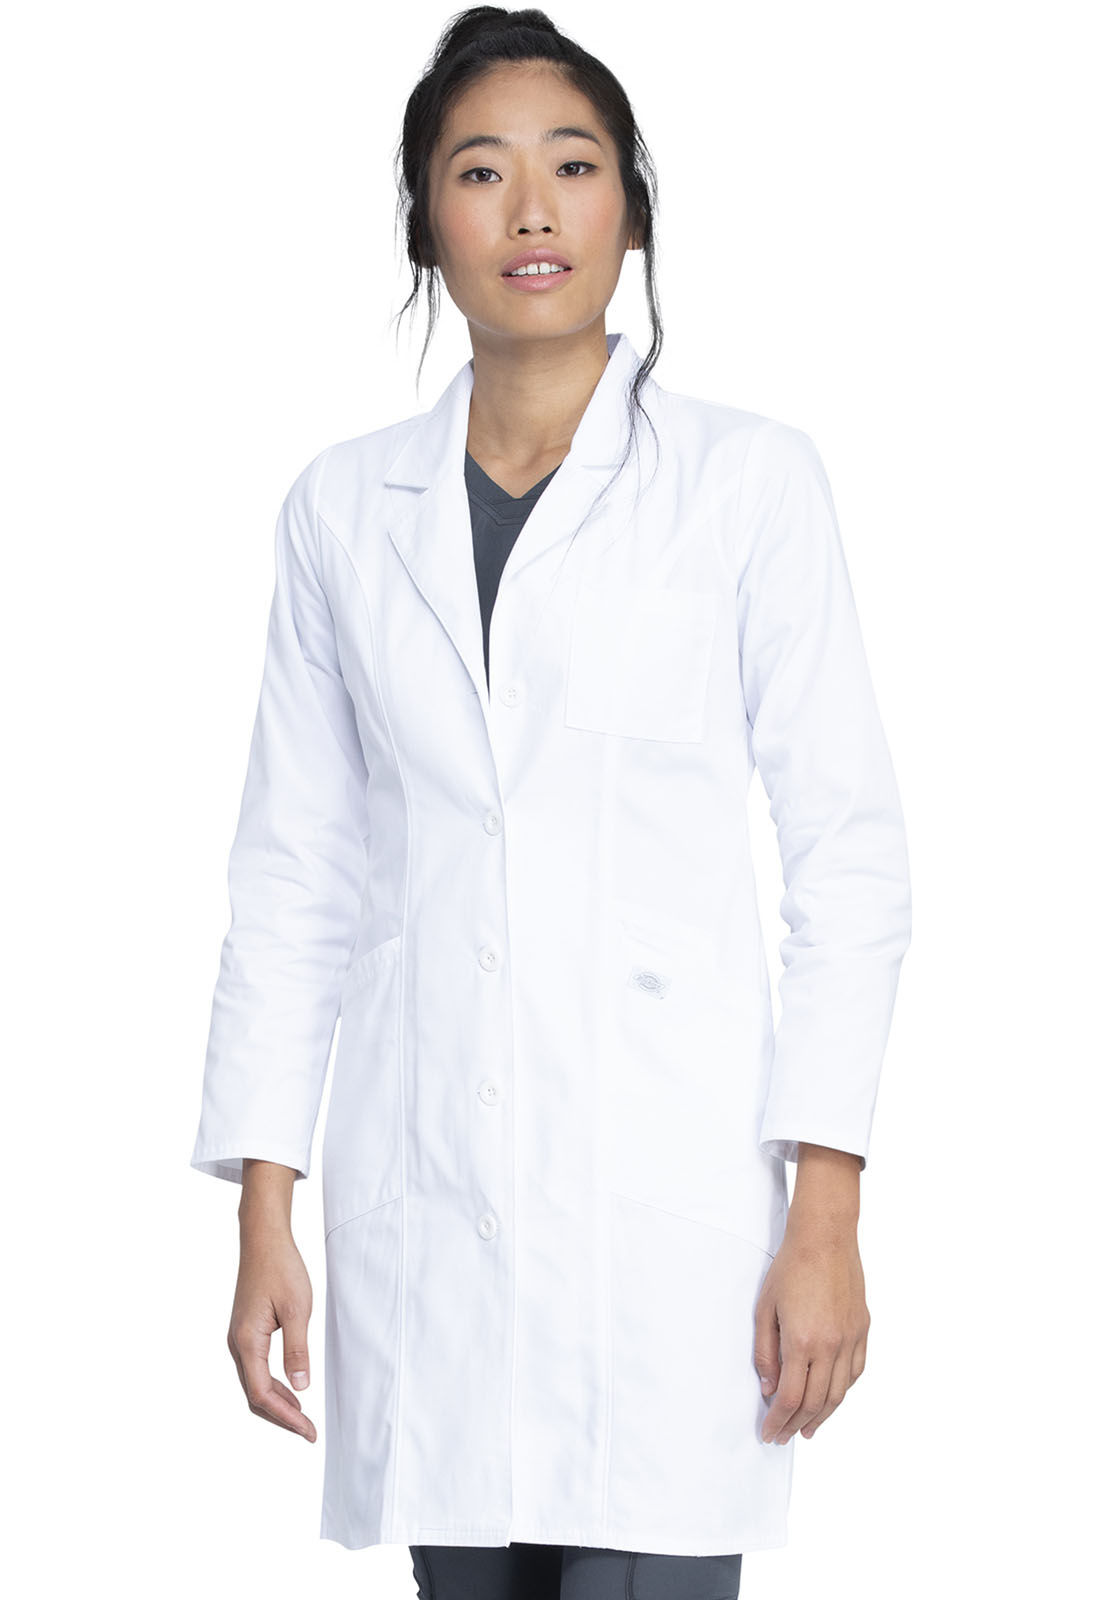 Dickies Professional Whites 37 Lab Coat In White From